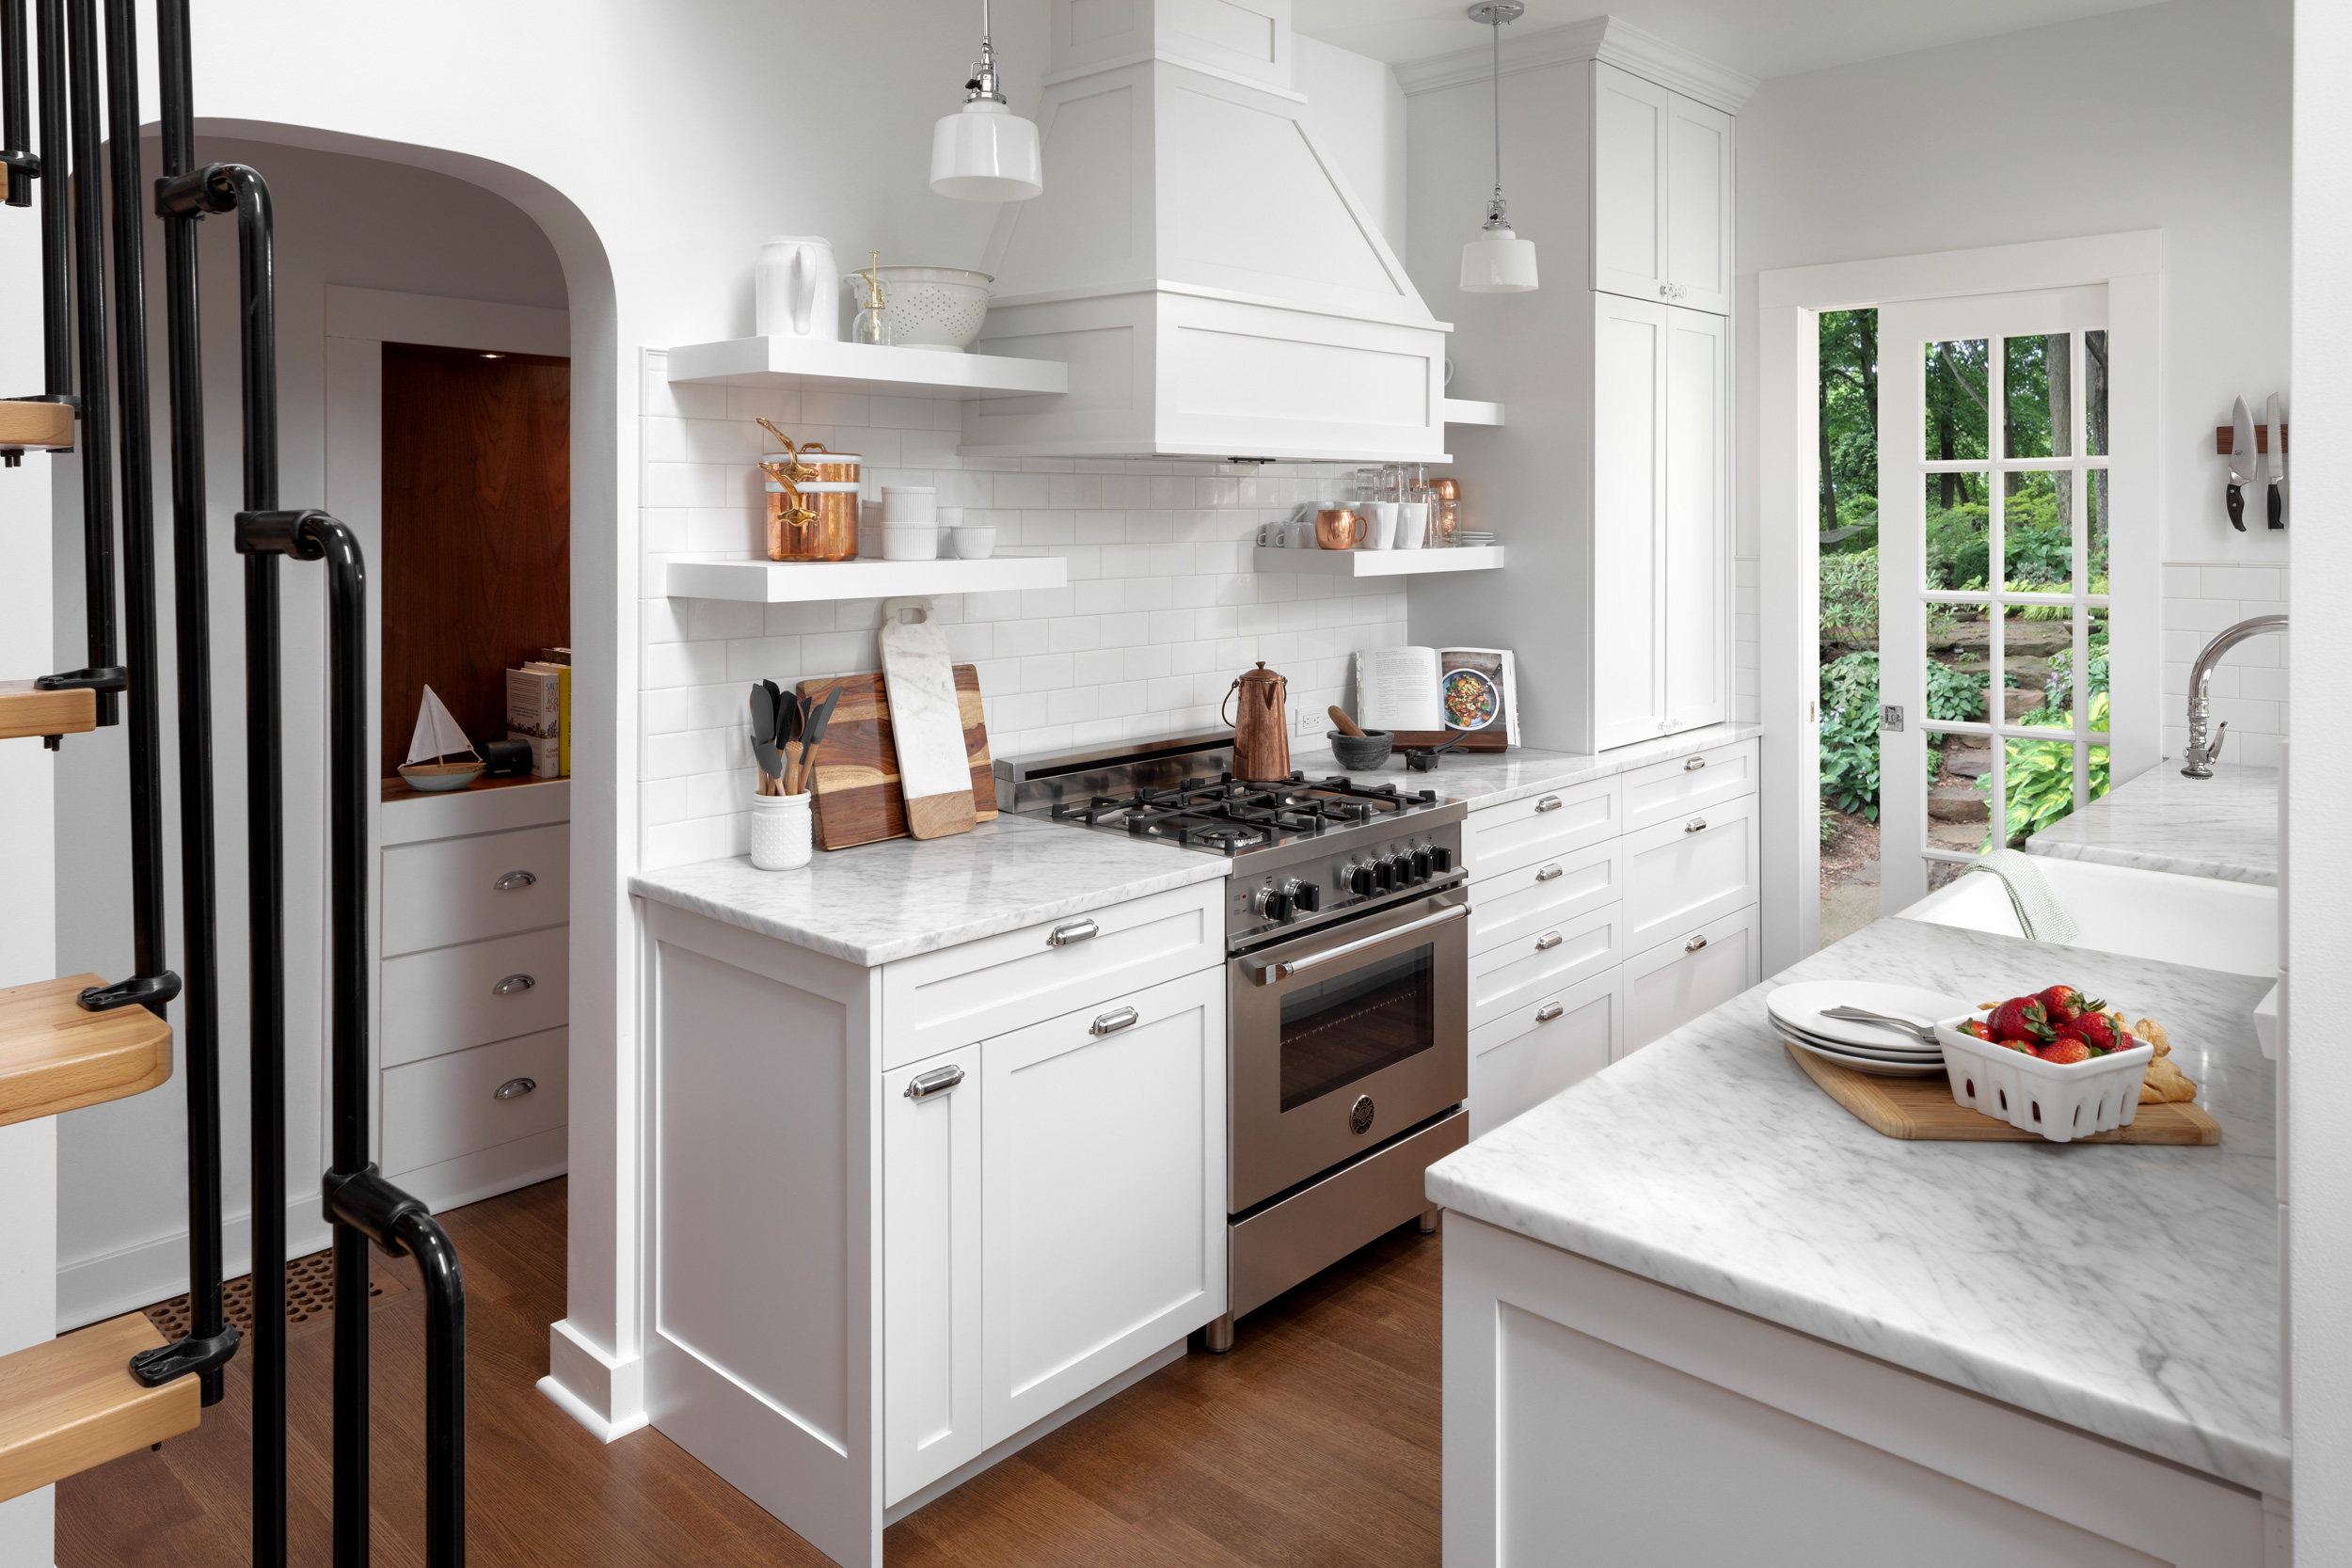 Haller-Lake-traditional-cottage-kitchen-2.jpg